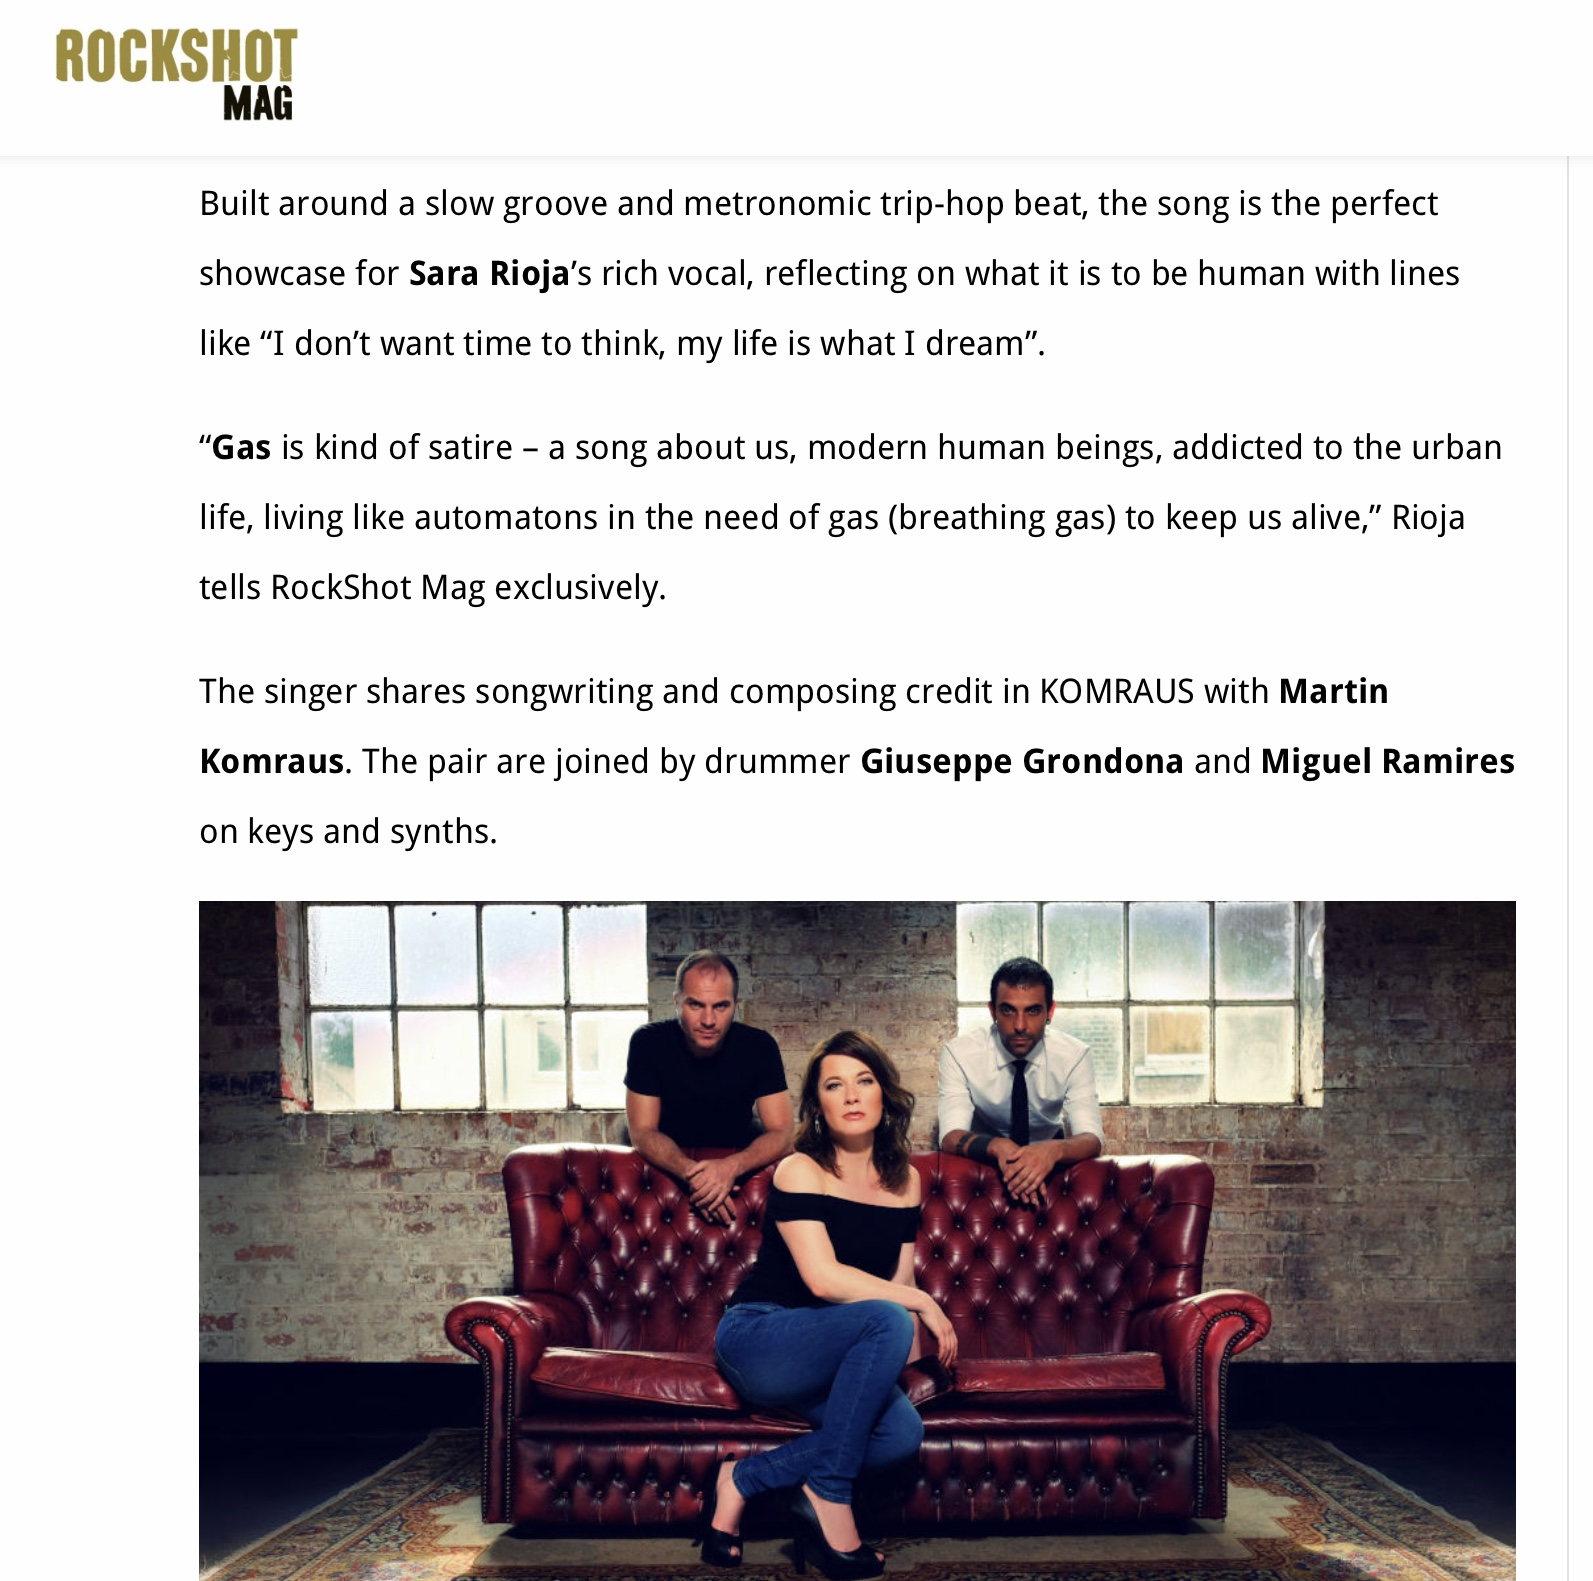 ROCKSHOT MAG-'gas' premiere - Review about the song and KOMRAUS sound